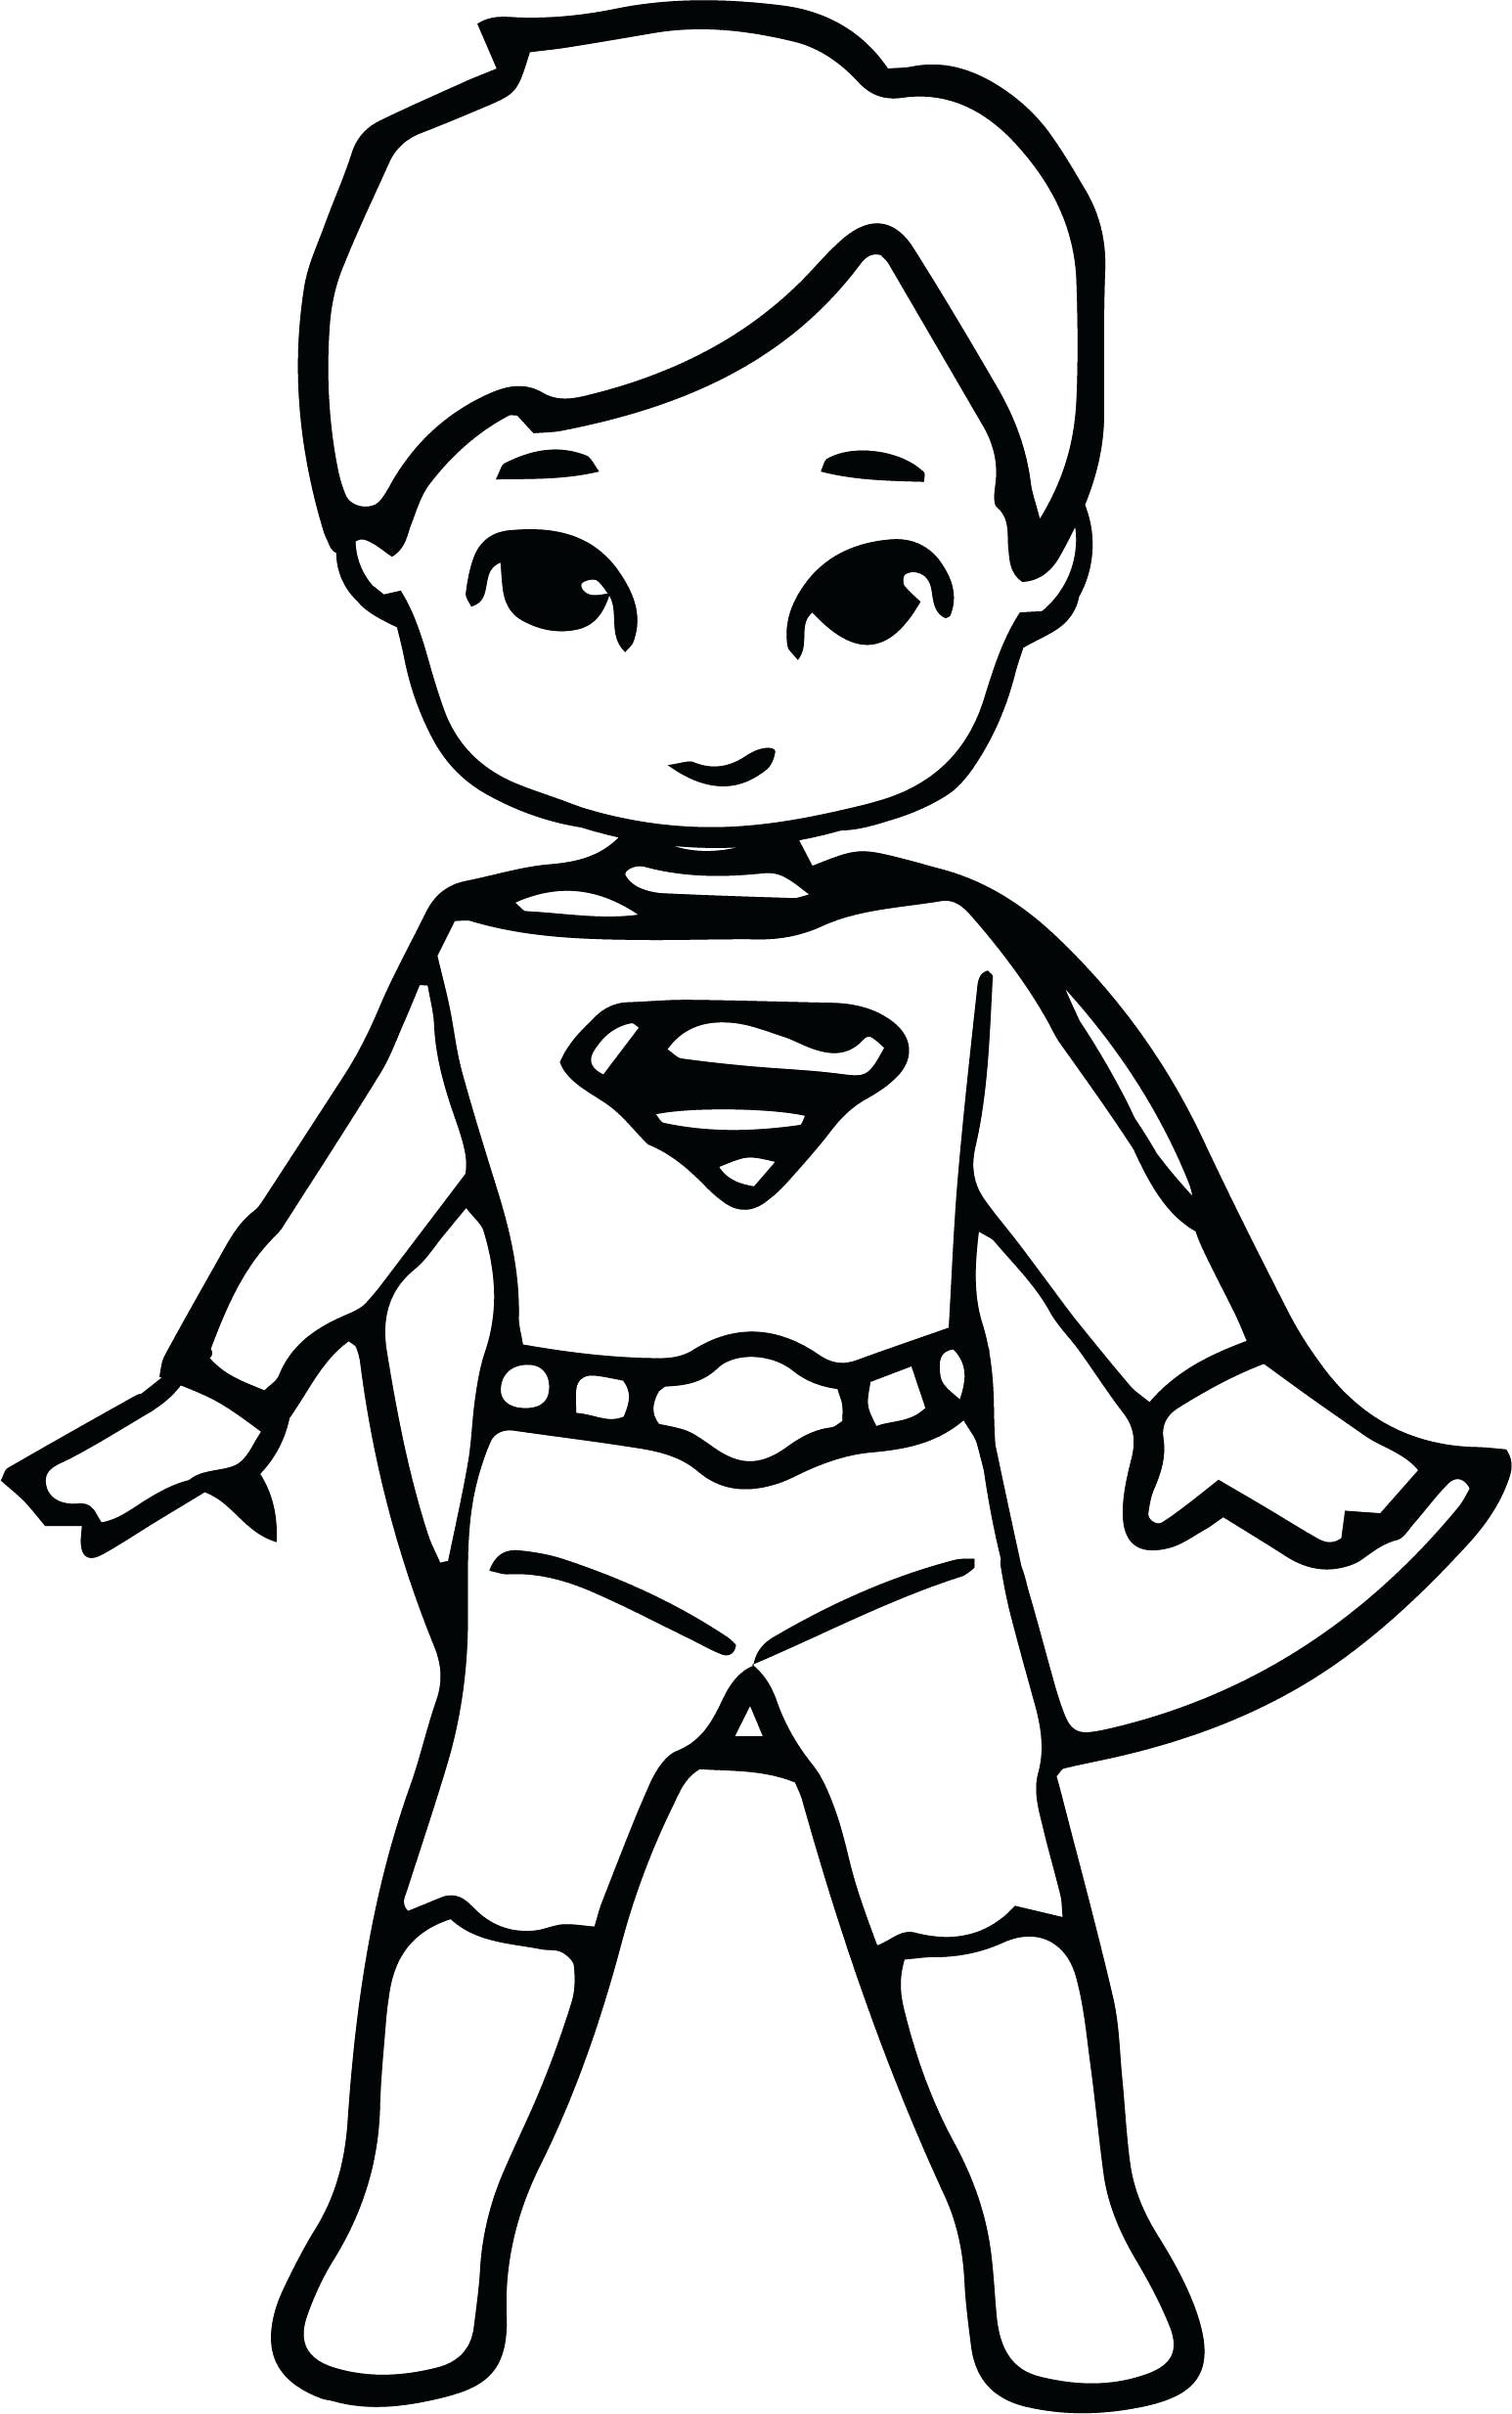 1546x2468 Coloring Pages Superman Superhero